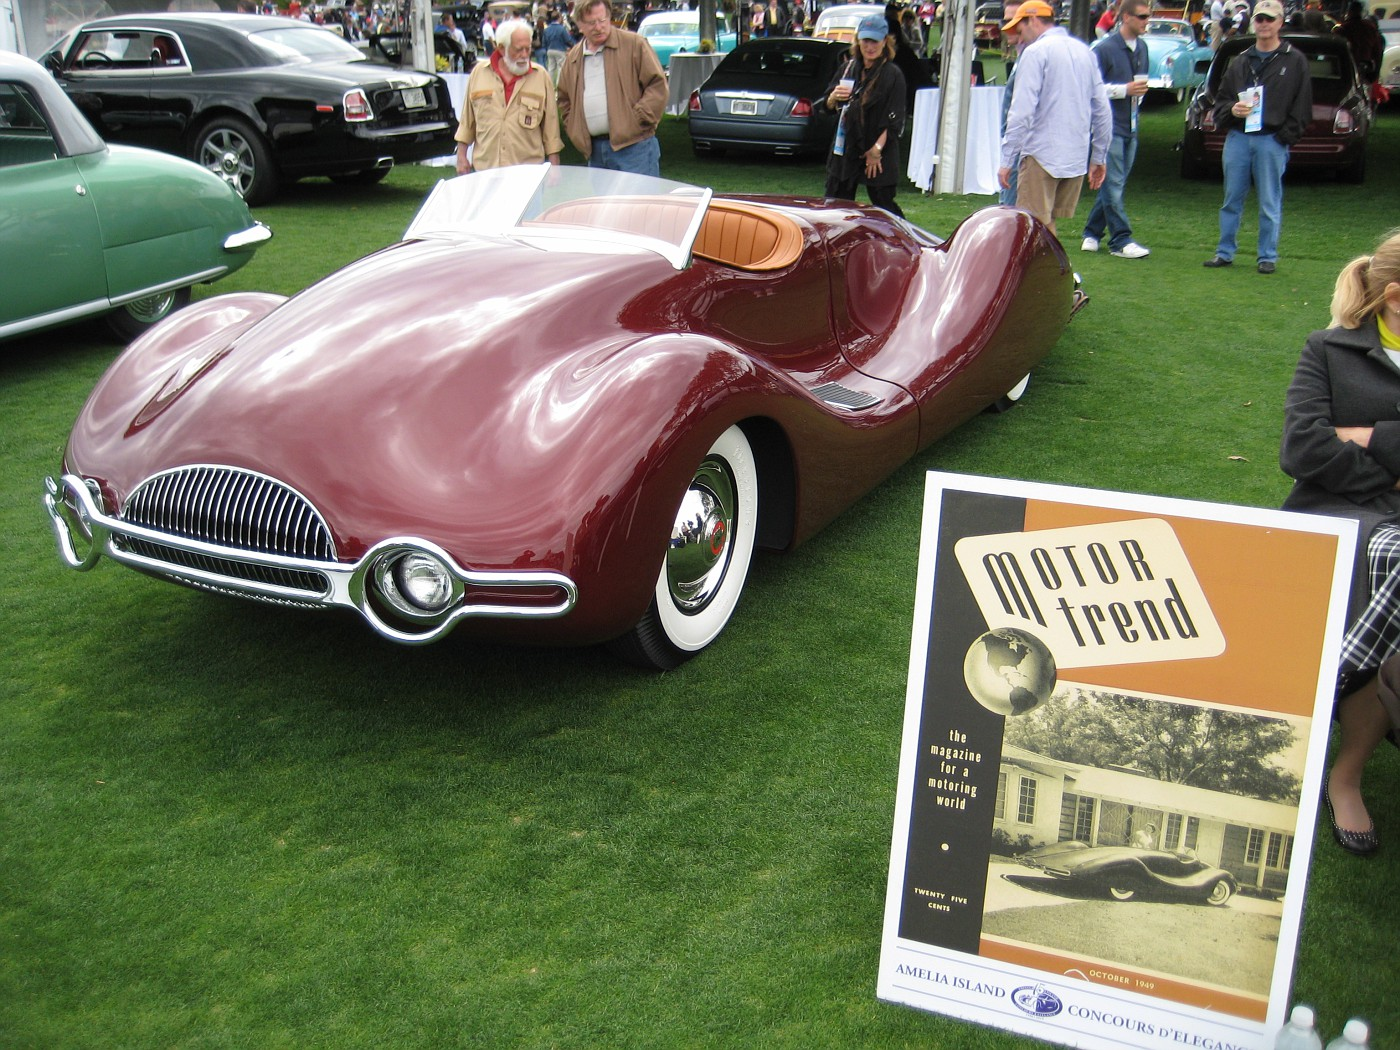 Norman Timbs Streamliner